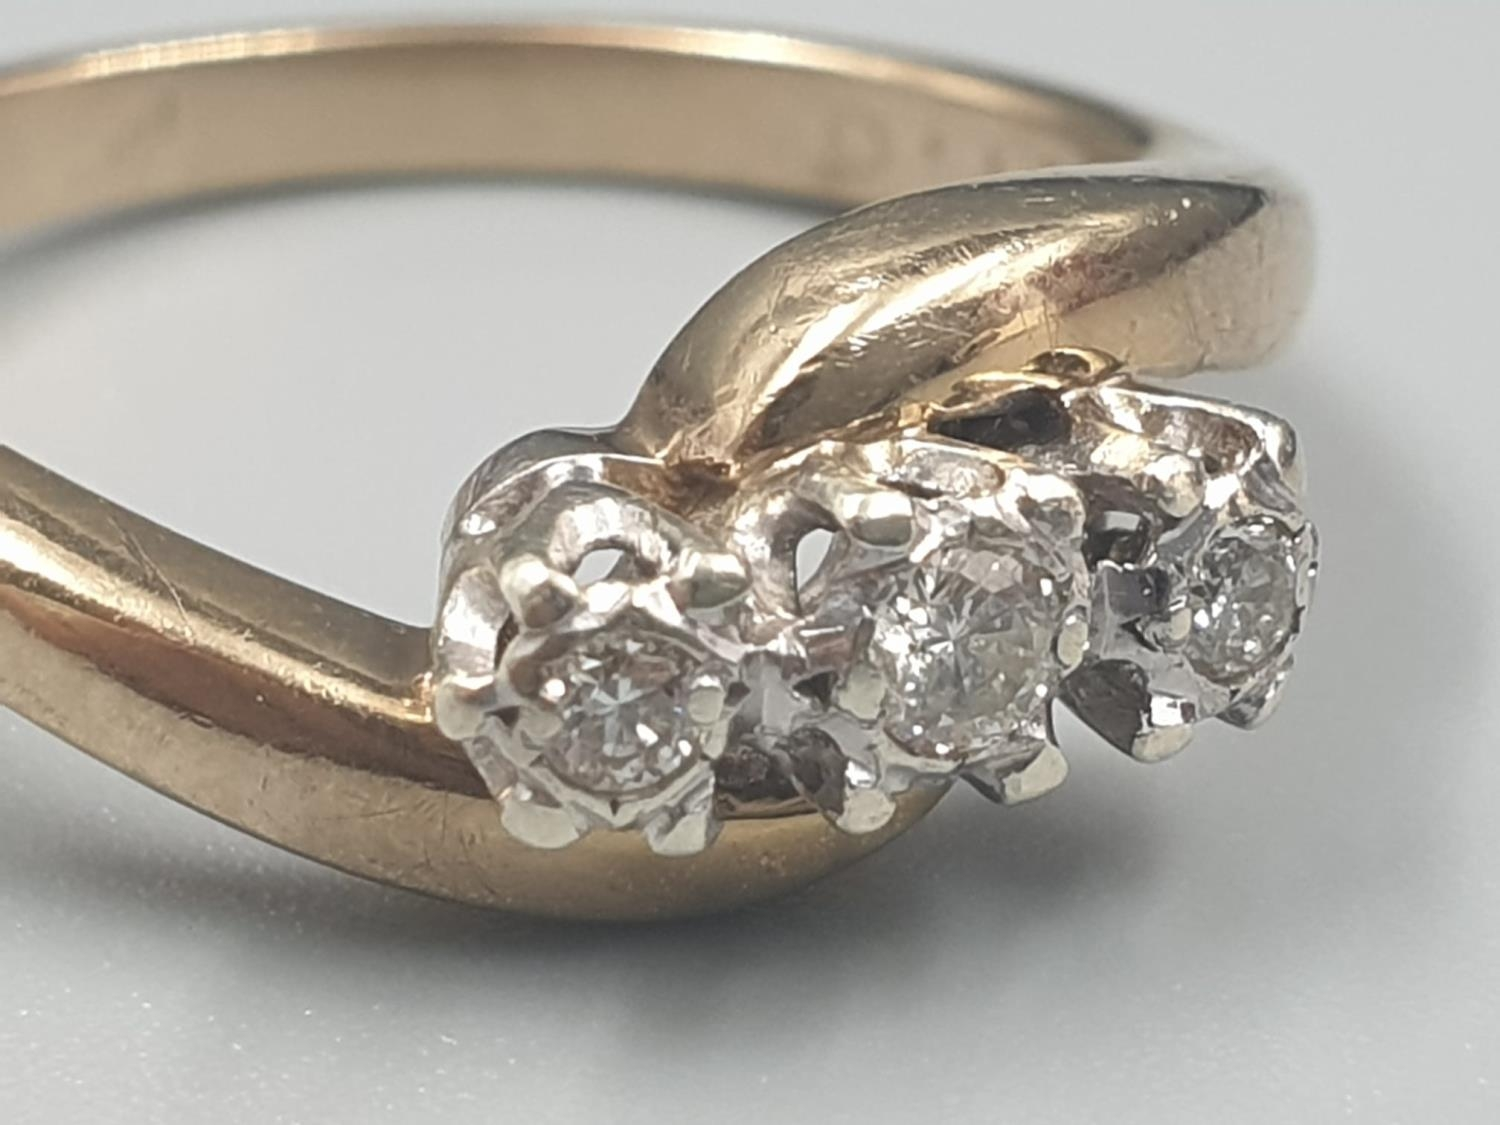 9K YELLOW GOLD VINTAGE 3 STONE DIAMOND TWIST RING APPROX 0.10CT DIAMONDS WEIGHT 3G SIZE L1/2 - Image 2 of 7